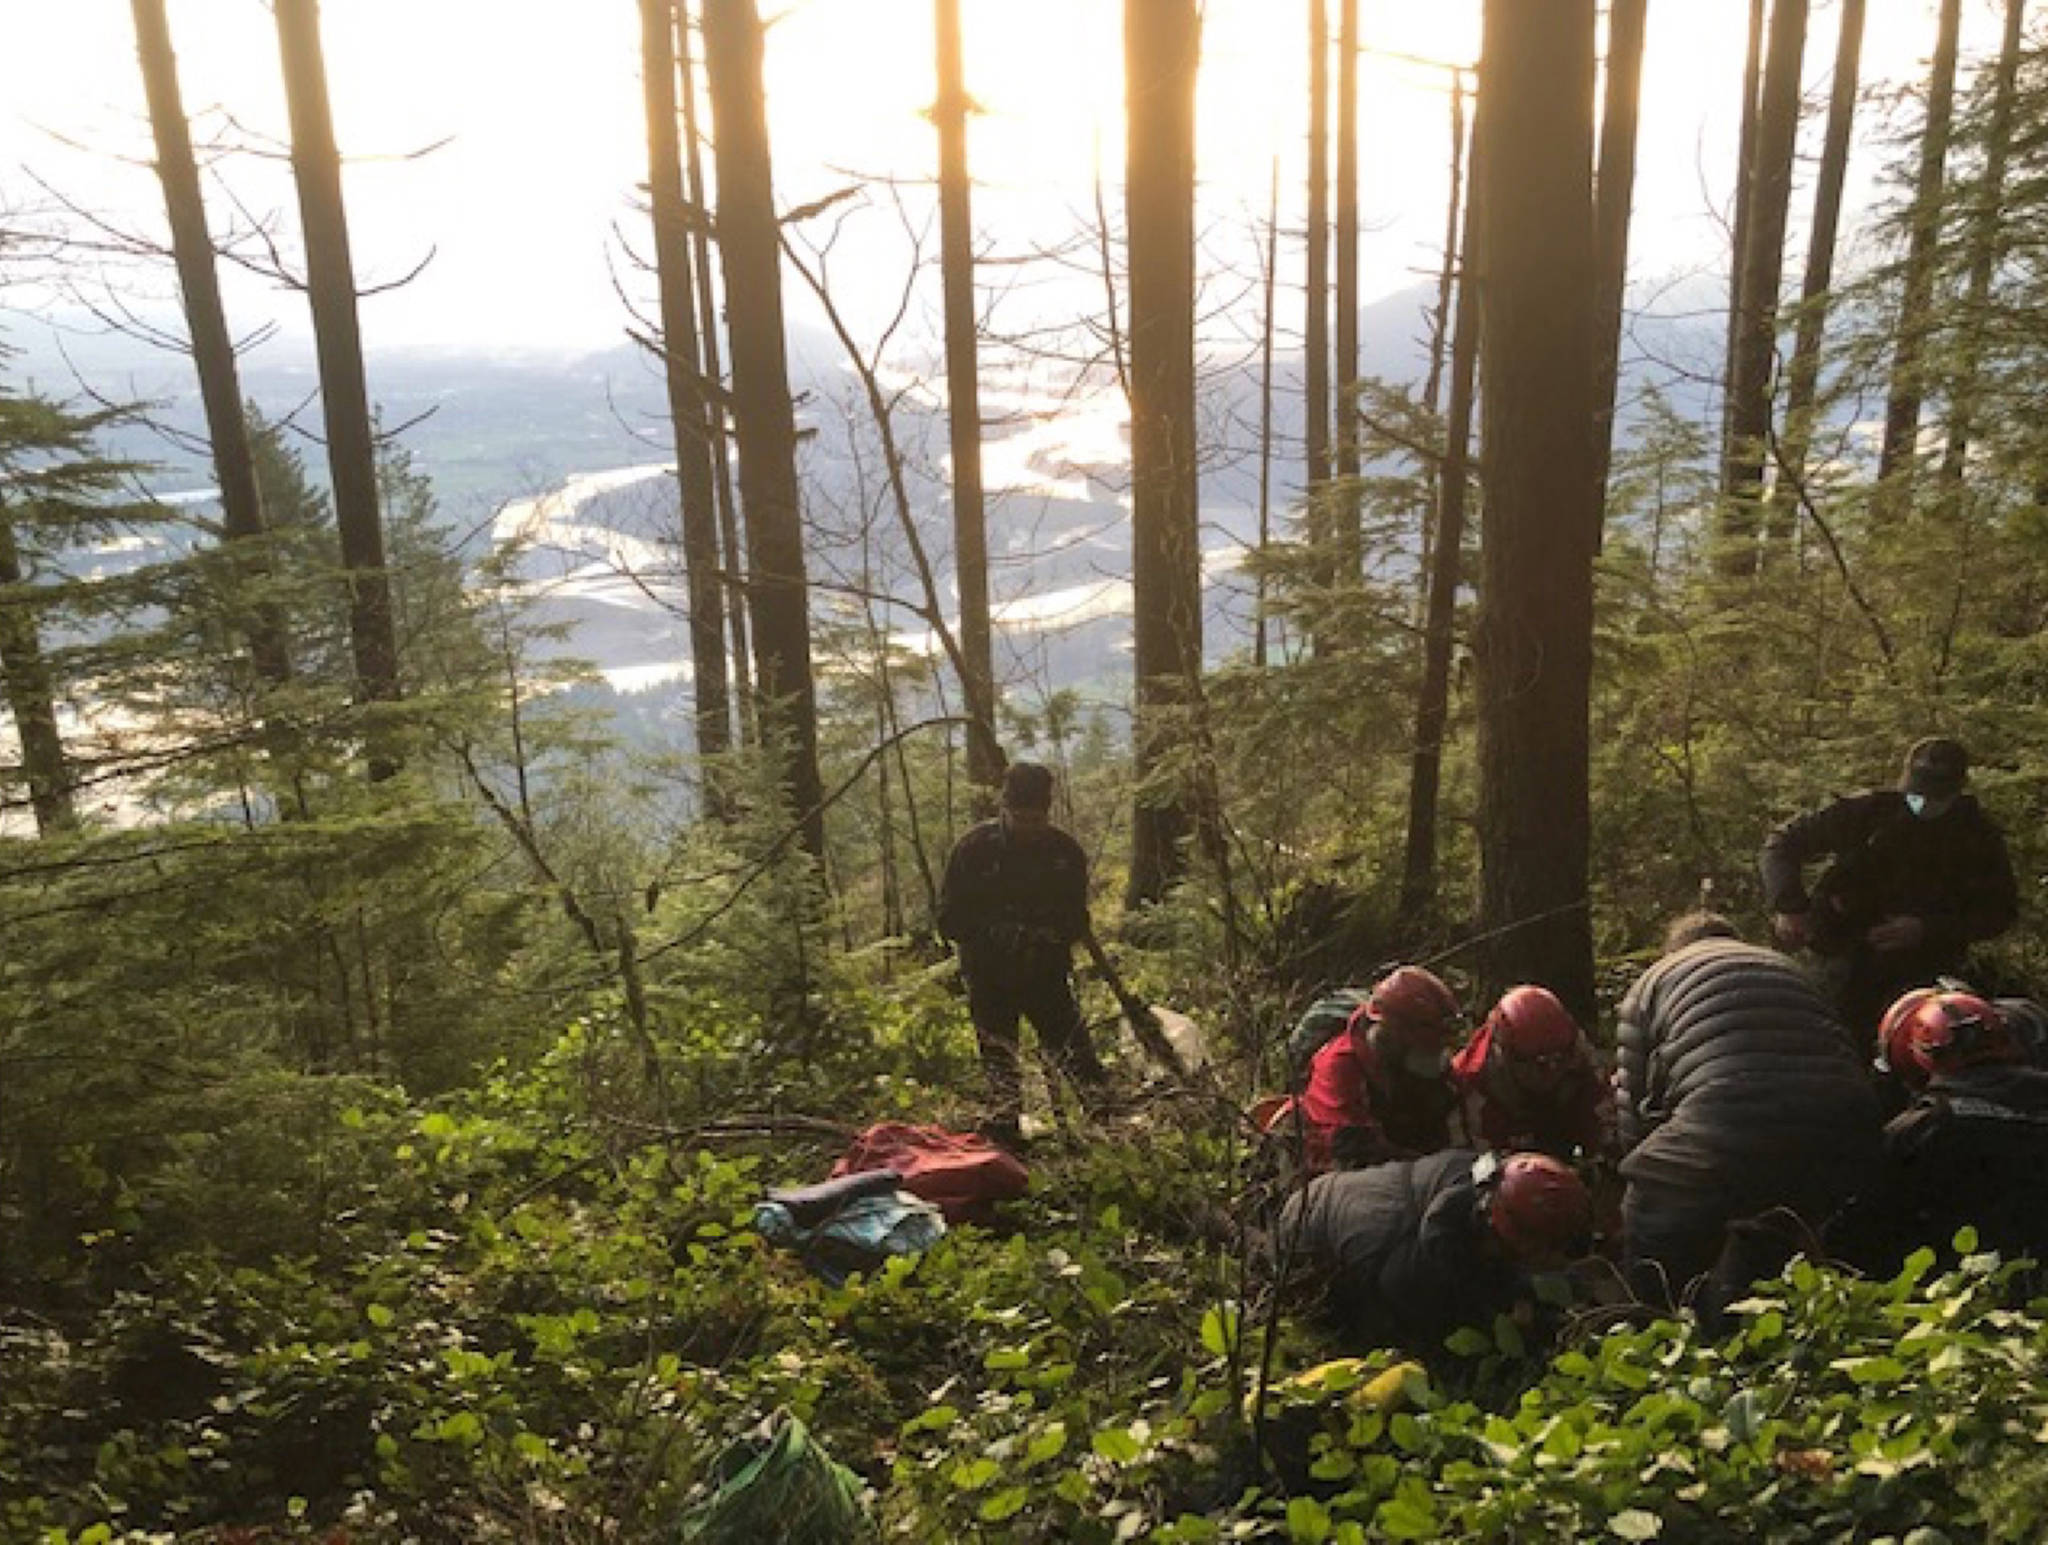 Kent-Harrison Search and Rescue members work quickly to prepare a badly injured paraglider pilot for transport following a harrowing treetop rescue this past weekend. (Contributed Photo/Dave Harder)